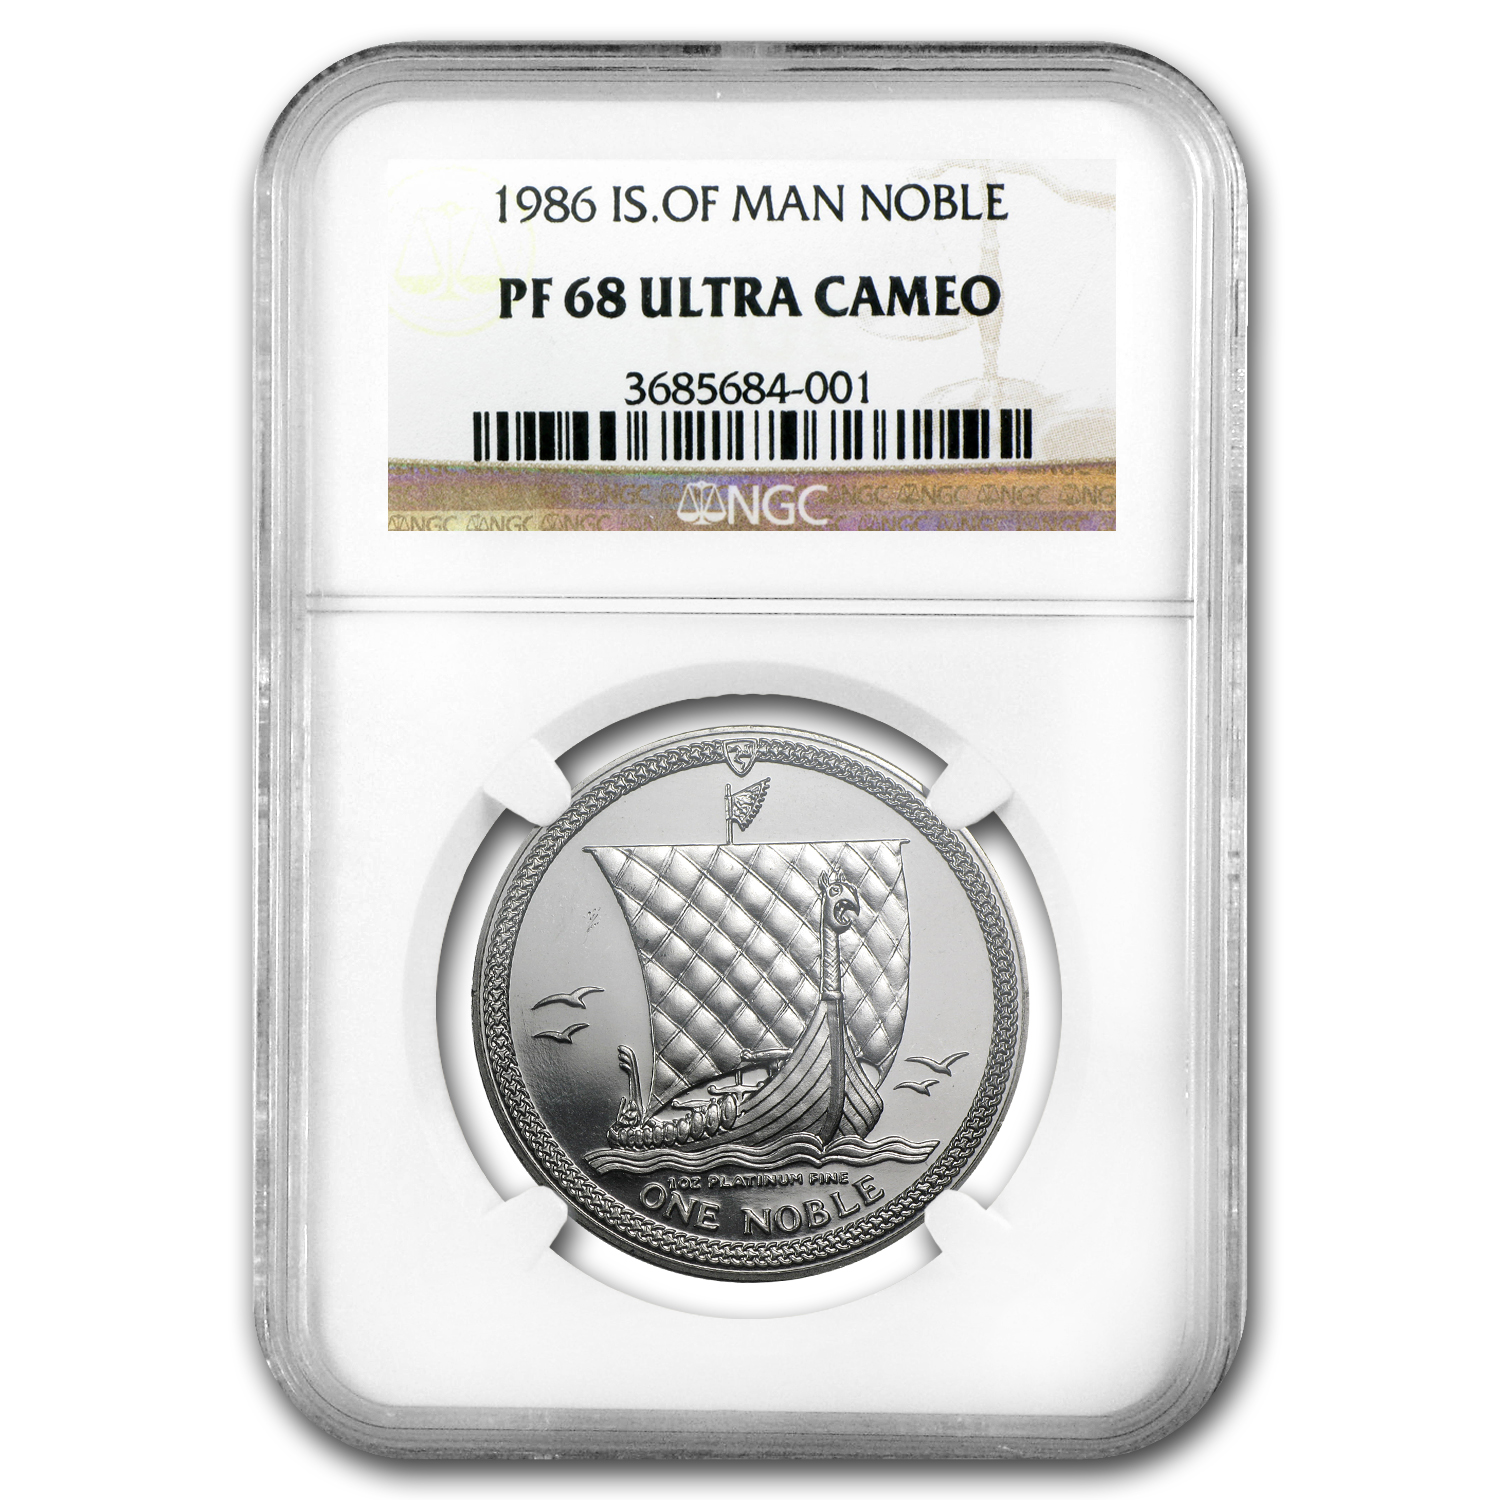 1986 1 oz Isle of Man Platinum Noble PF-68 NGC